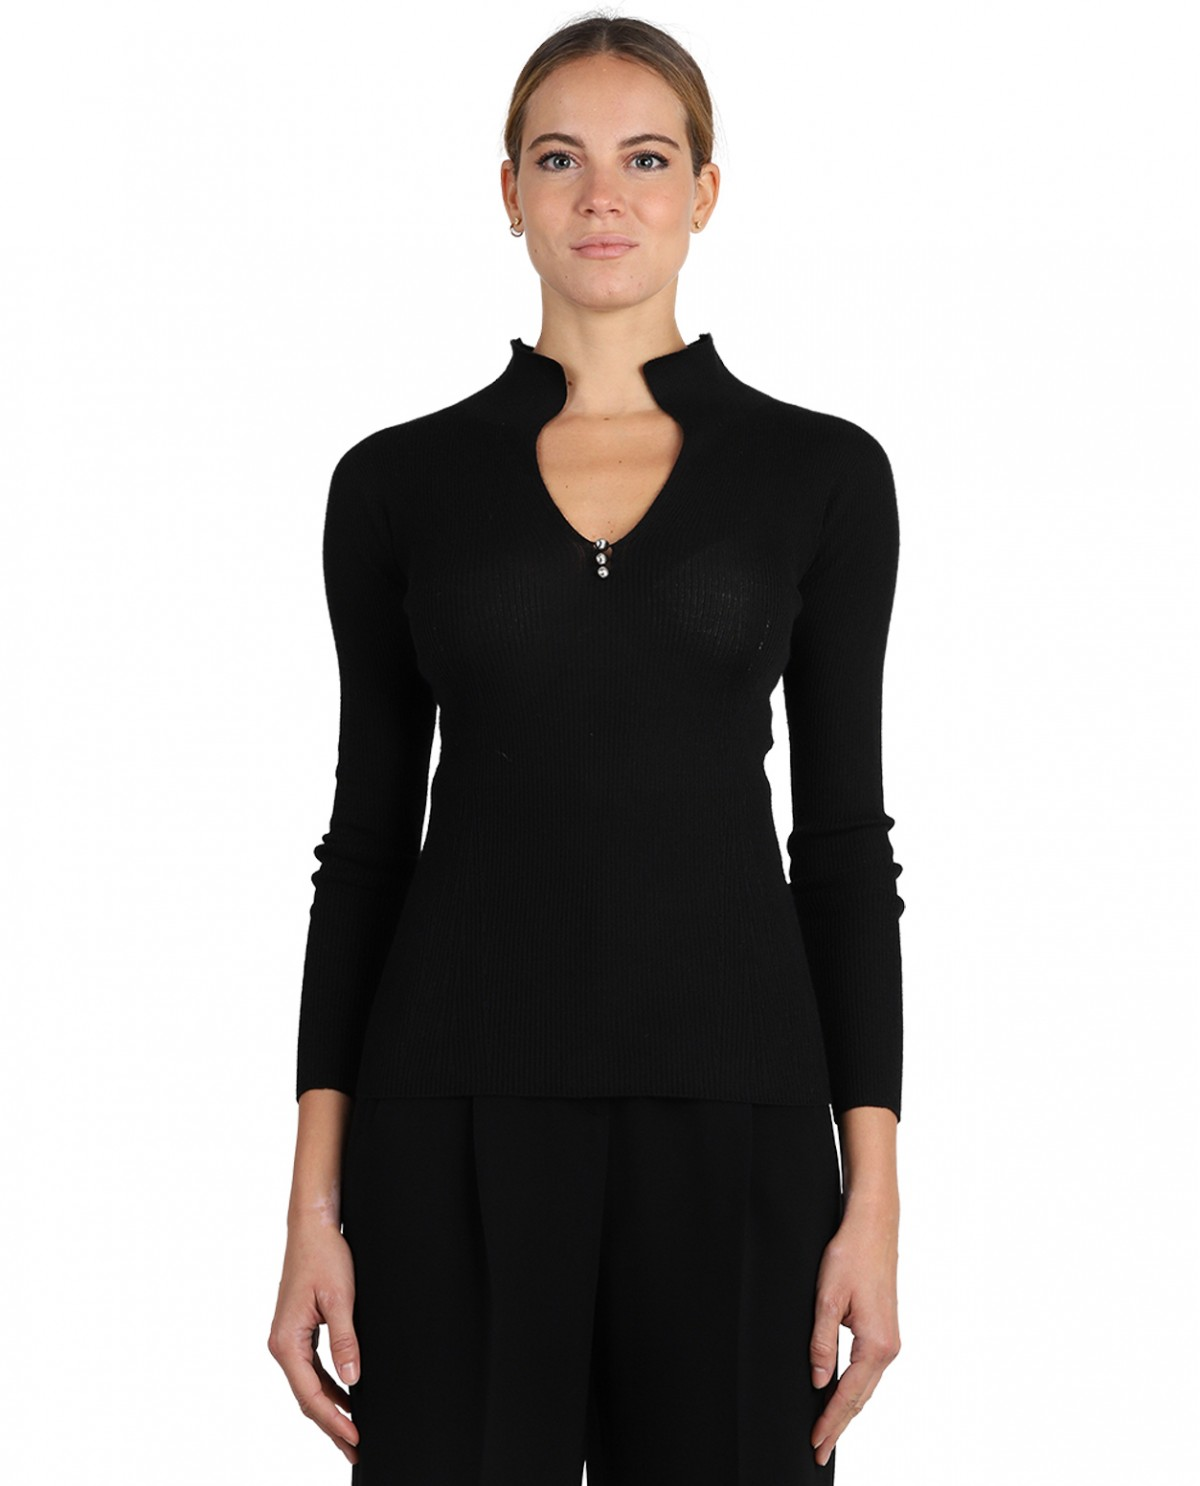 Lanvin black Arpege sweater